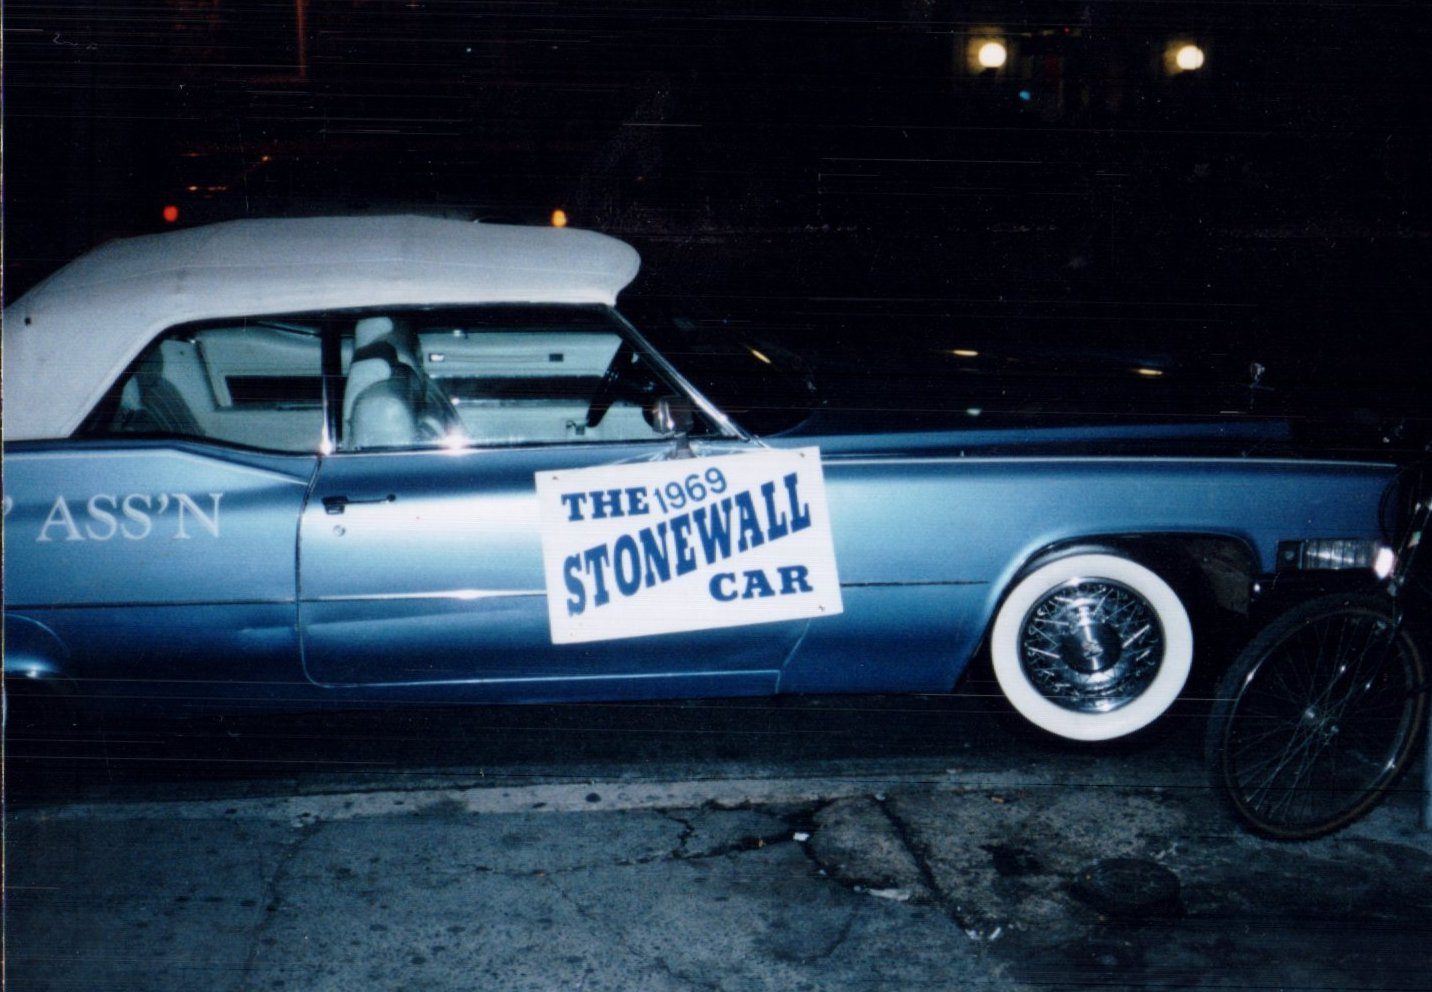 The true blue Stonewall Car at night and, from a downward angle, looking coupey